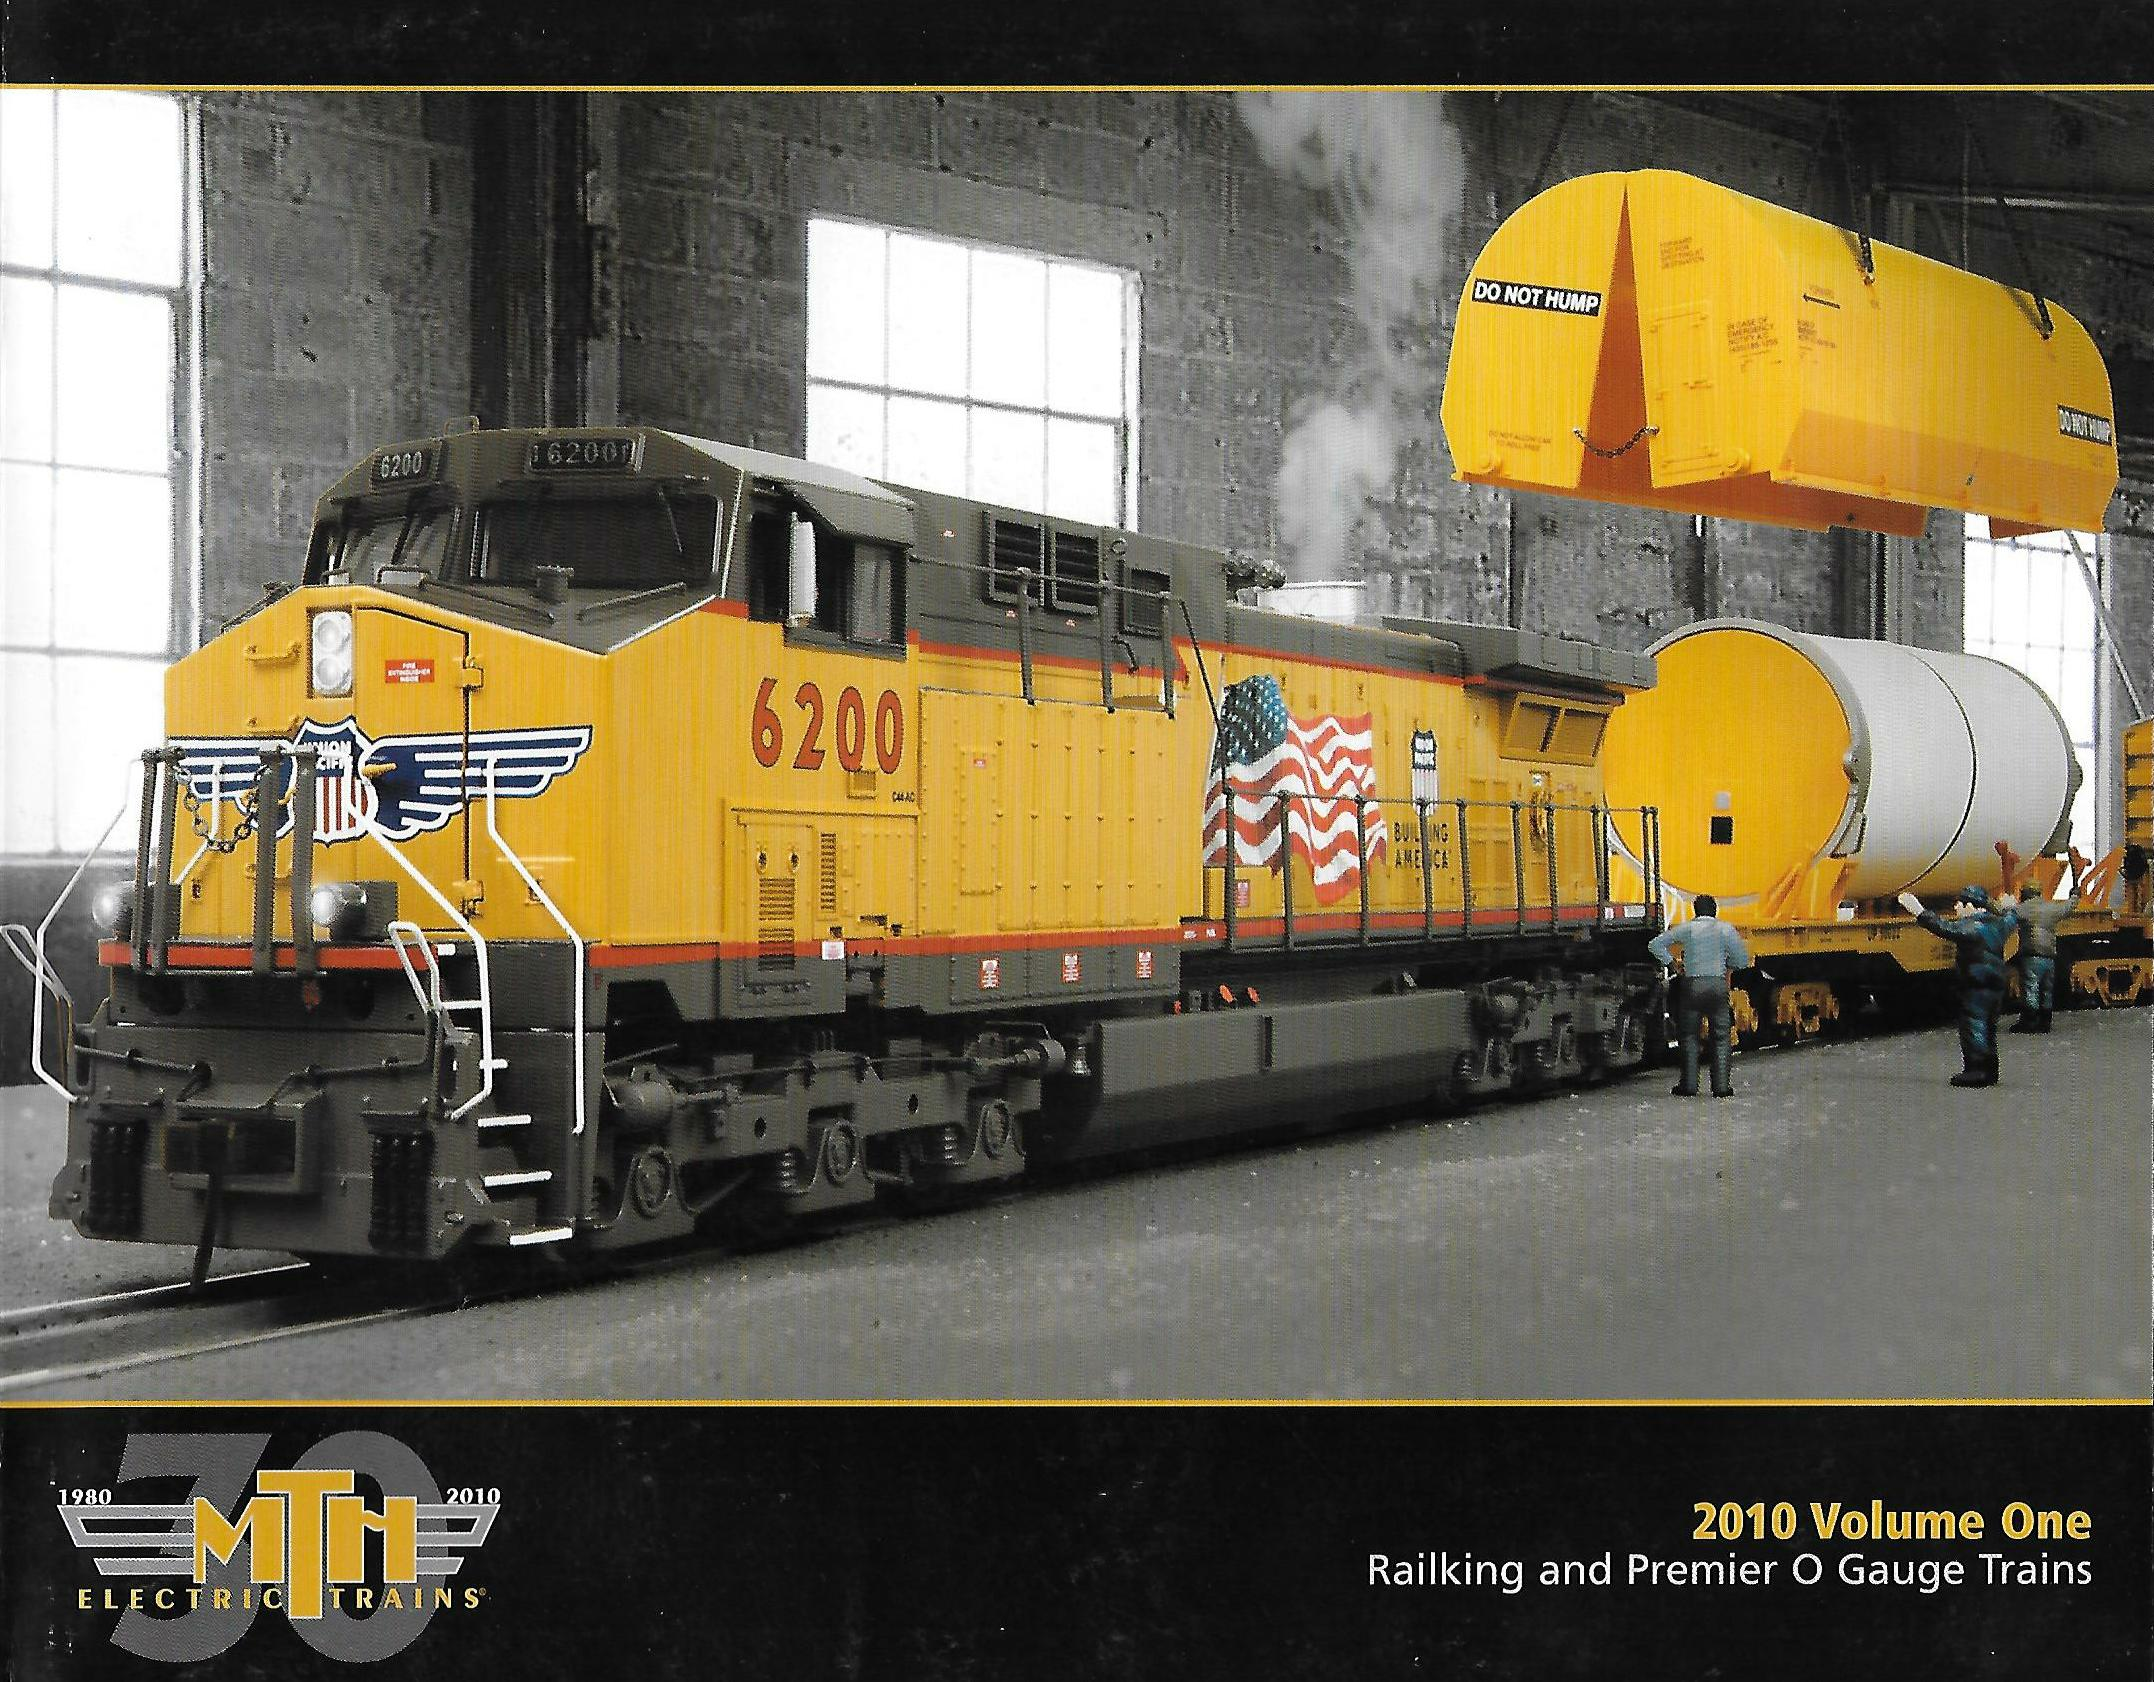 MTH 2010 Volume One Catalog image